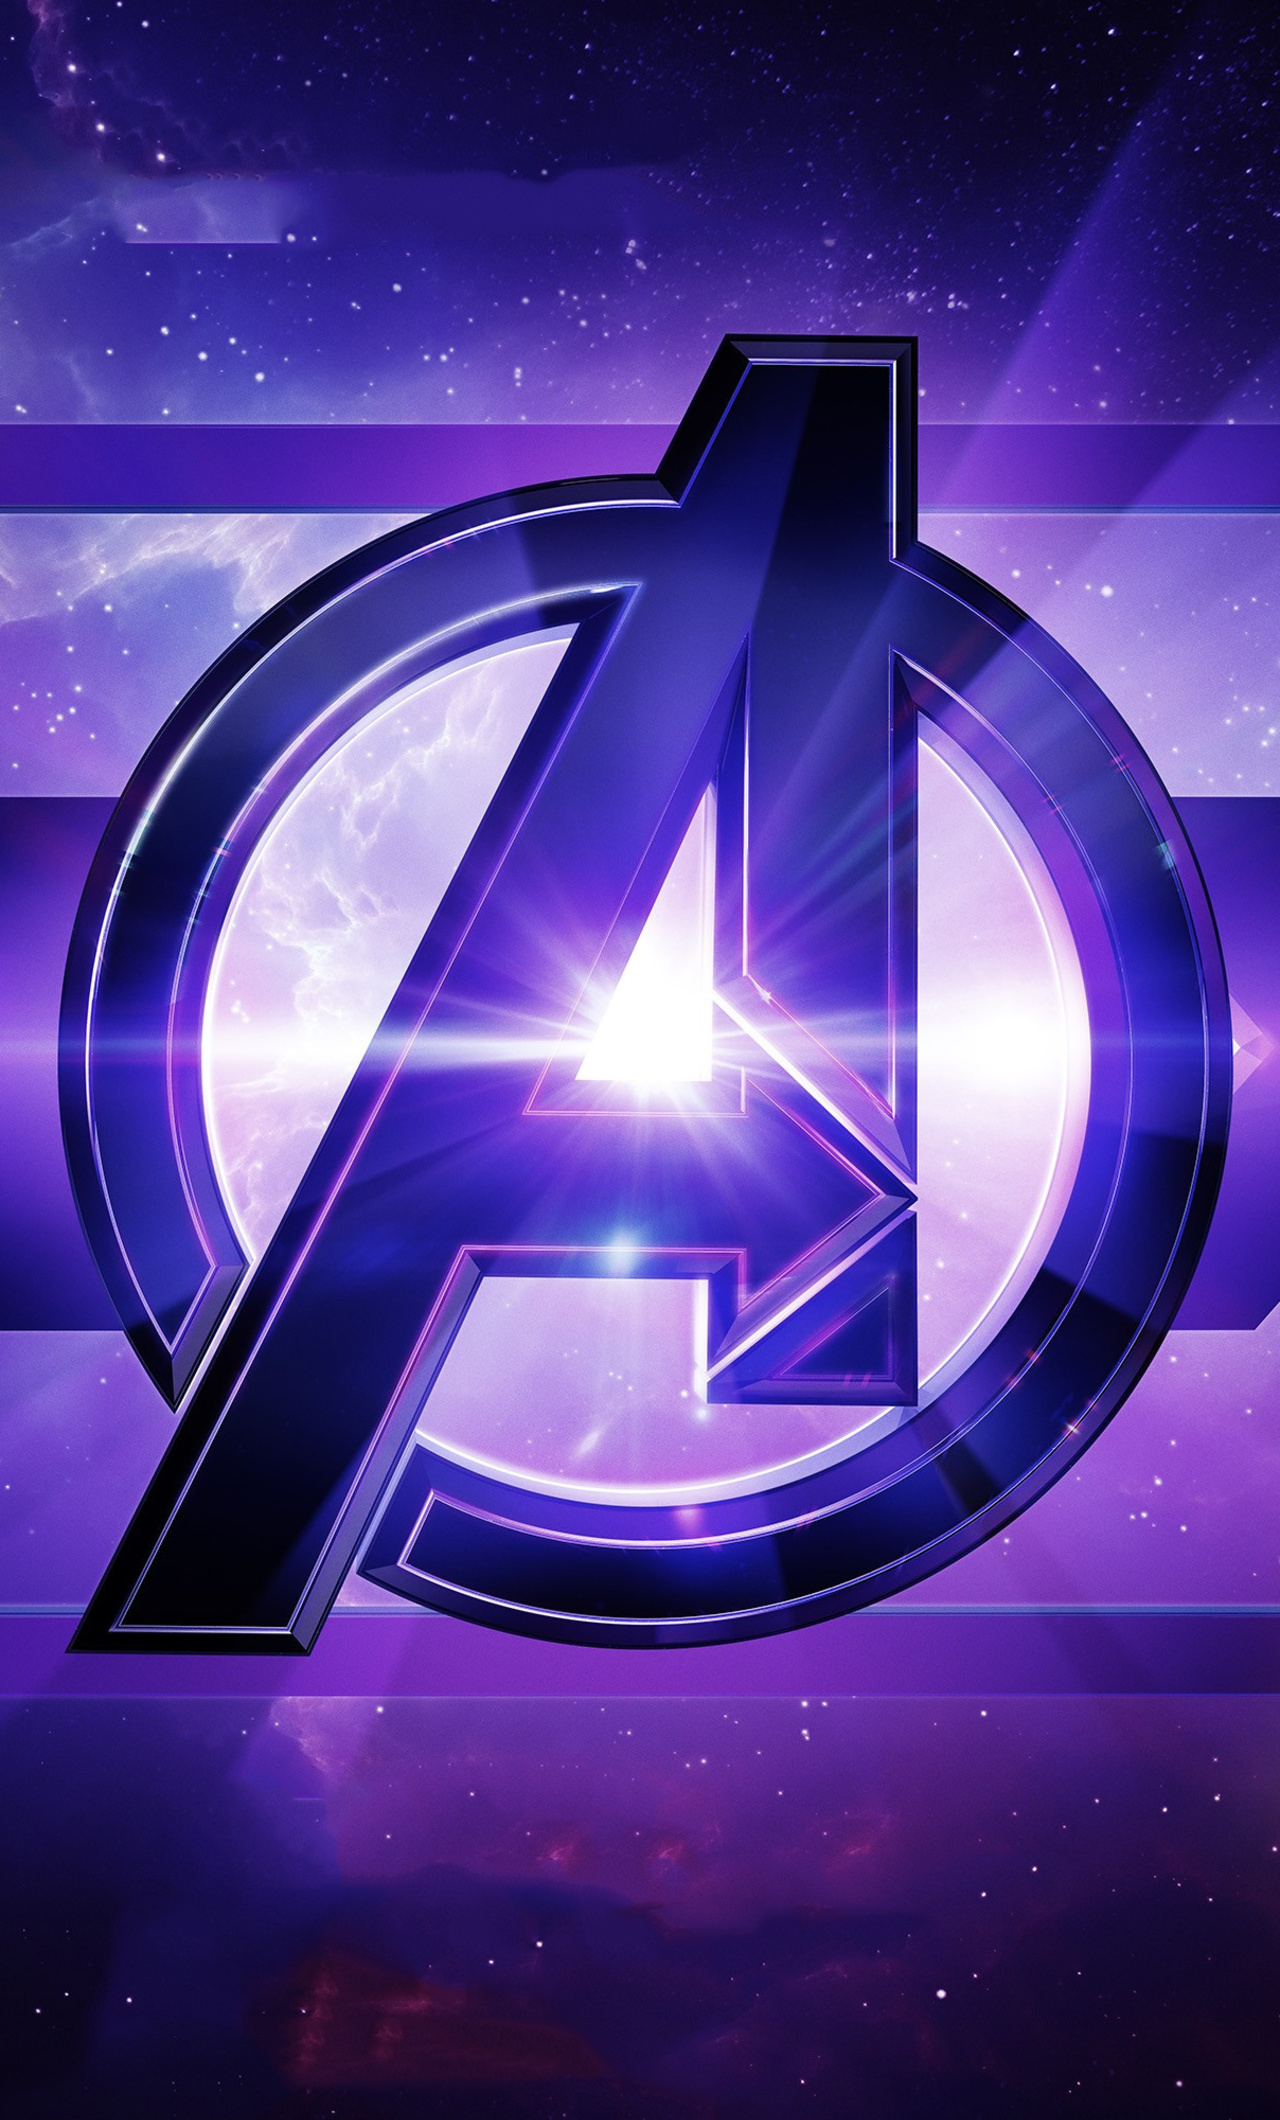 1280x2120 Avengers Endgame Imax Iphone 6 Hd 4k Wallpapers Images